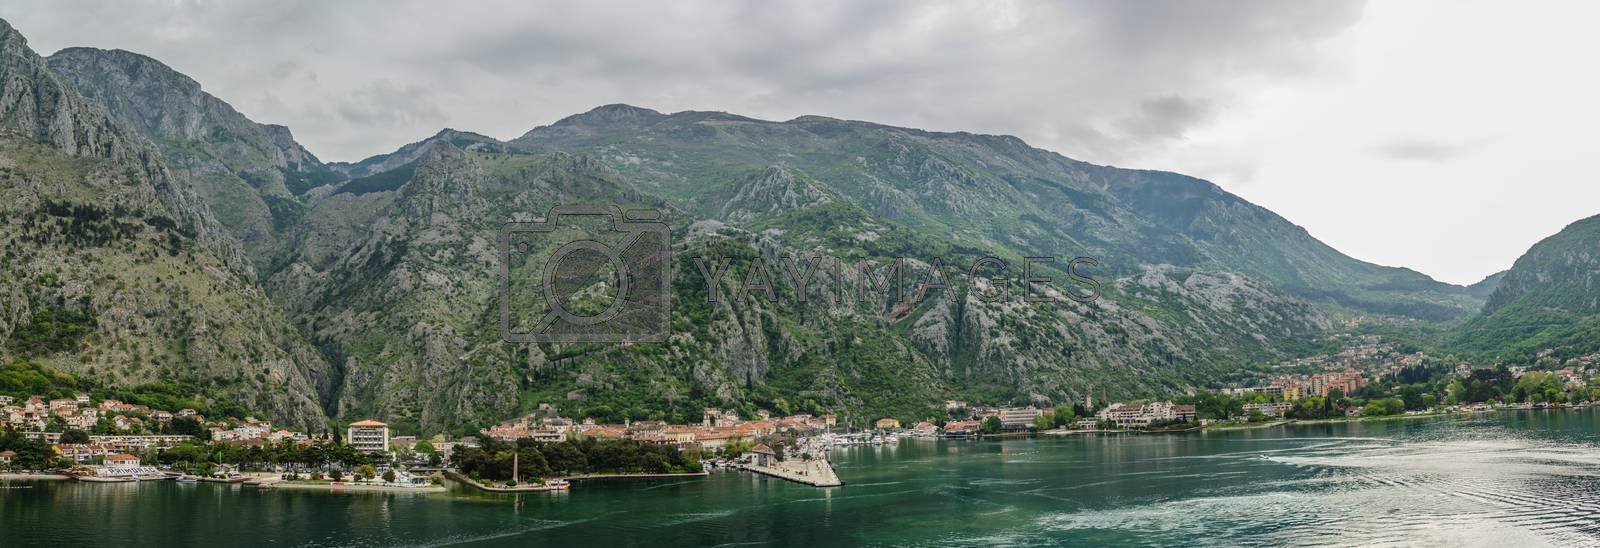 mountains in the city of Kotor panorama view